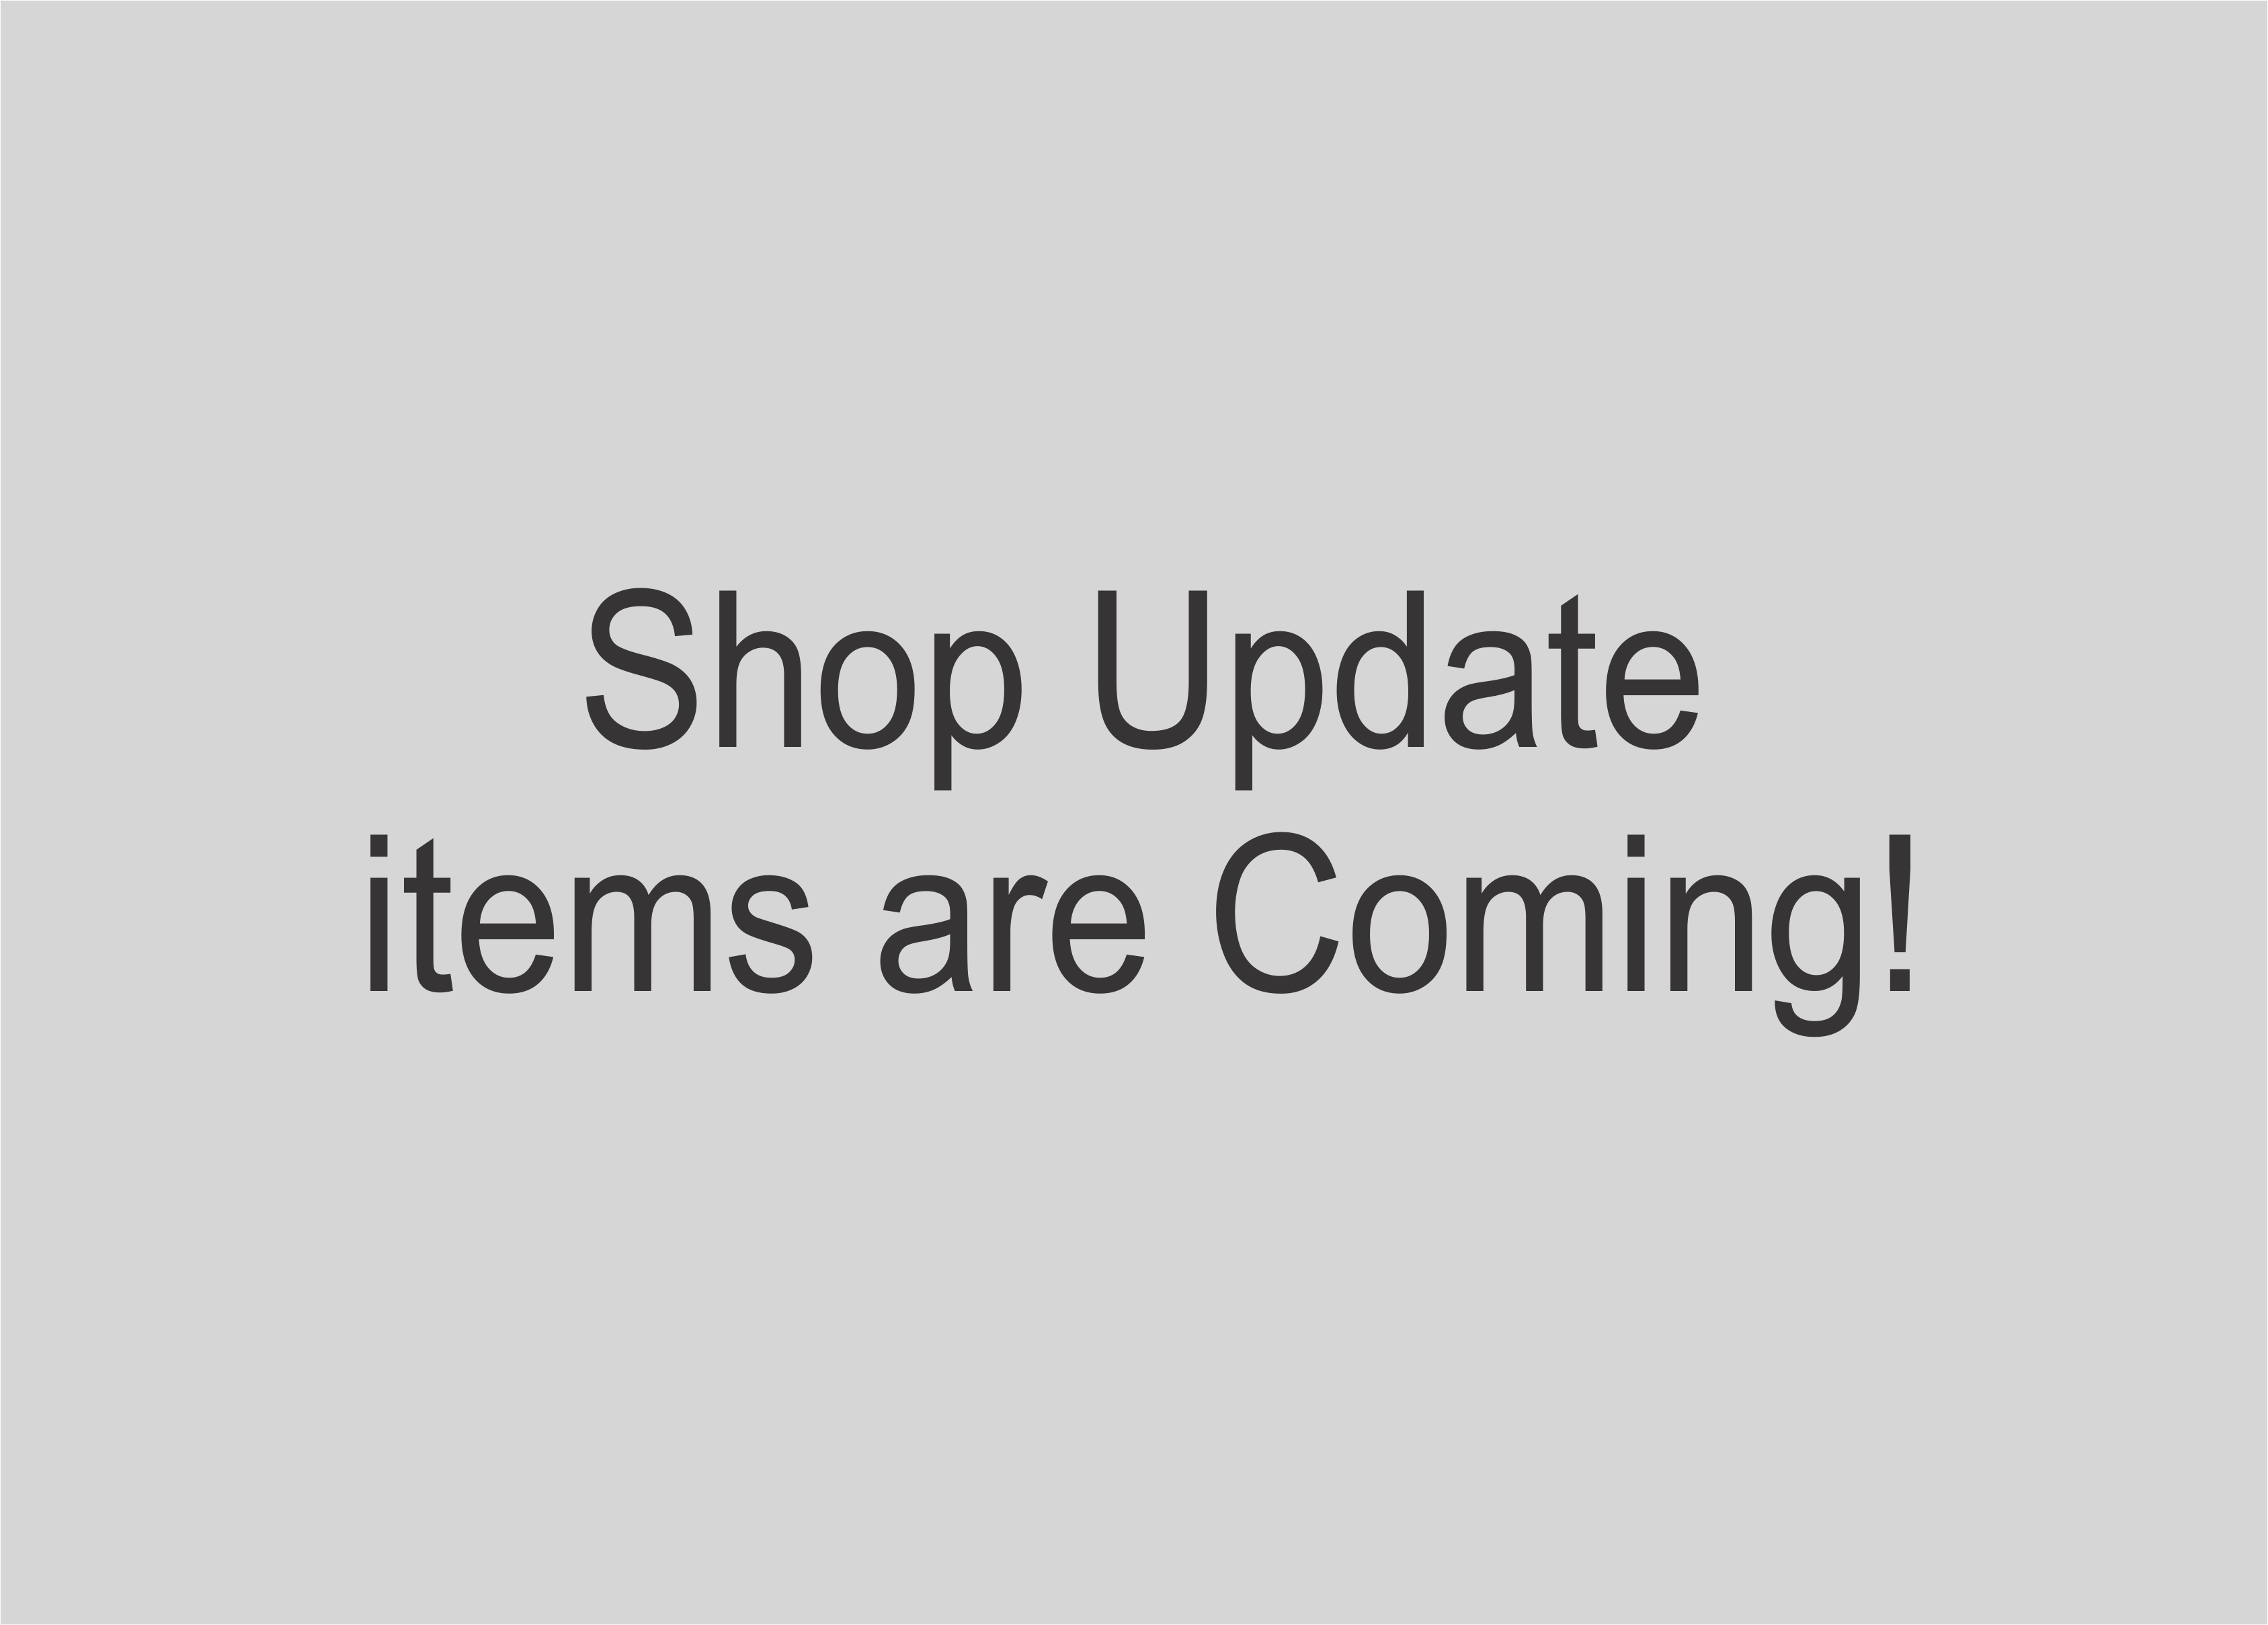 Shop Update items are coming!